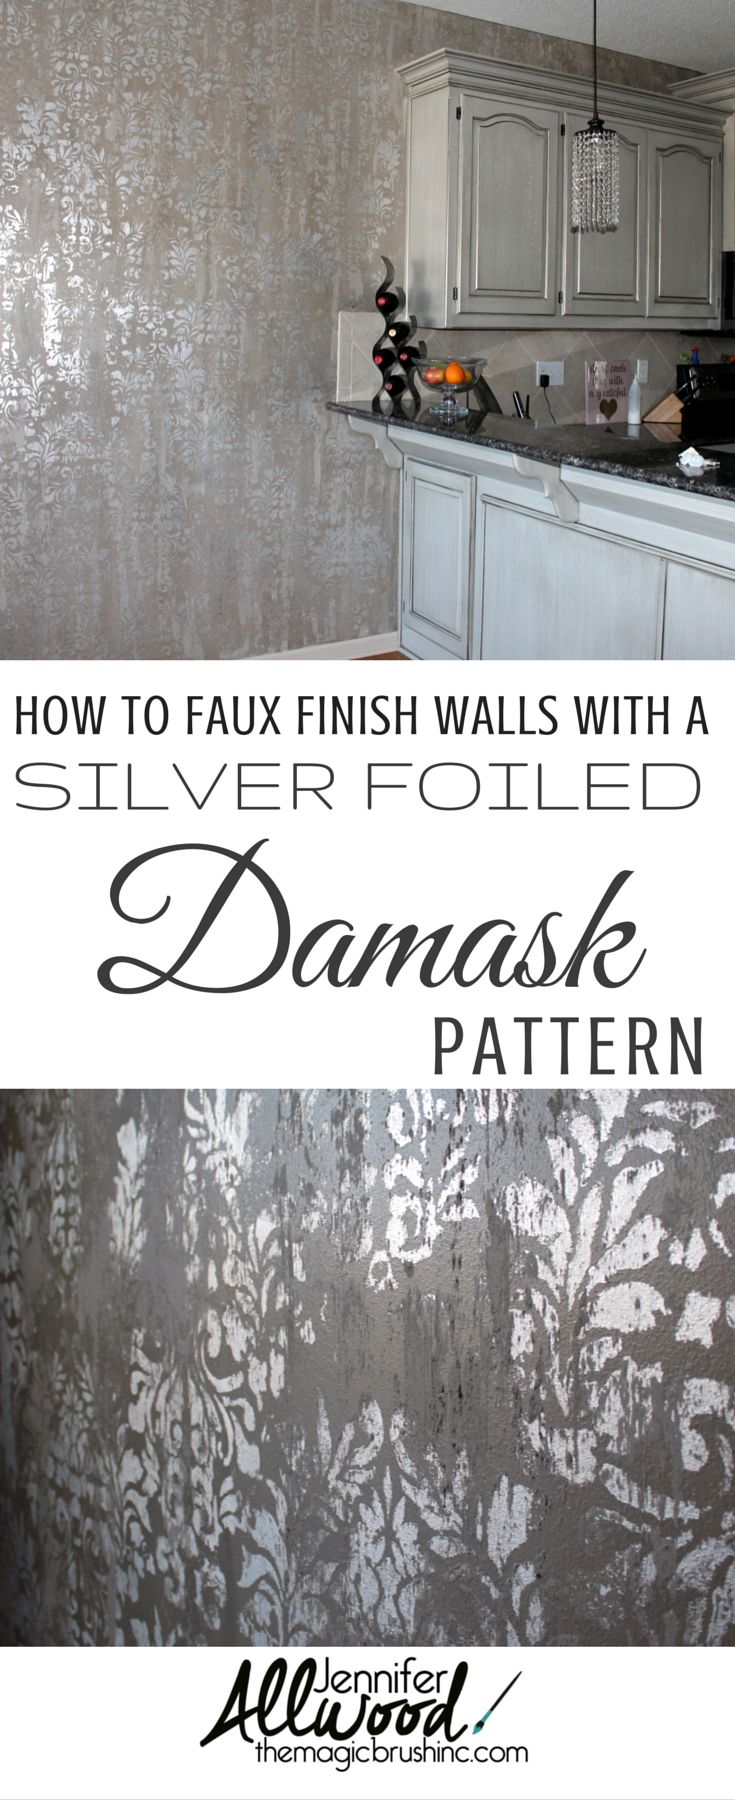 224 best damask wall stencils images on pinterest damask wall learn how to faux finish your walls with a silver foiled damask pattern this finish amipublicfo Choice Image